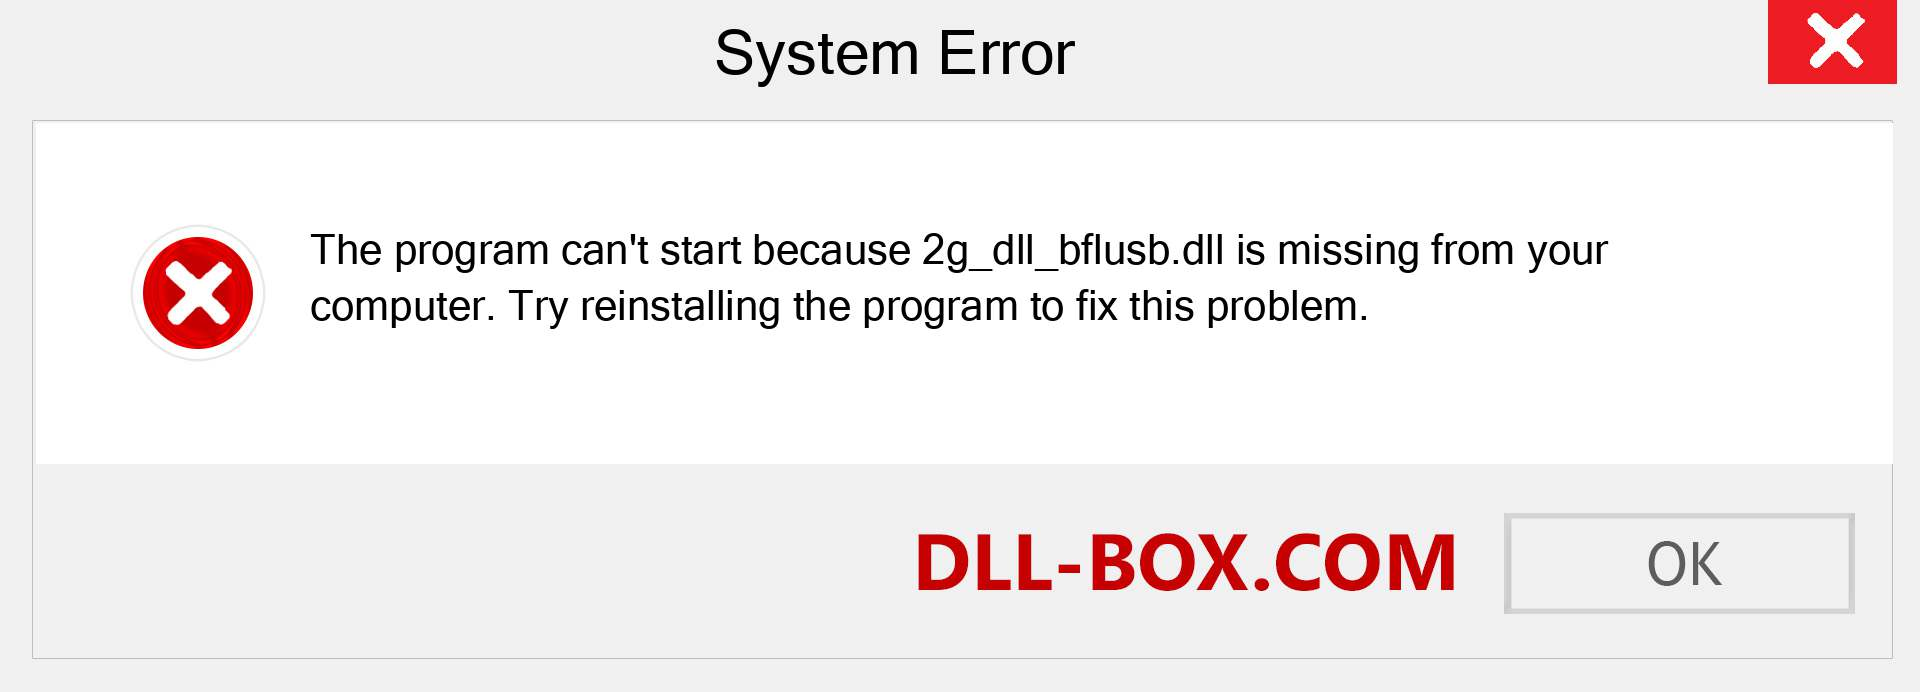 2g_dll_bflusb.dll file is missing?. Download for Windows 7, 8, 10 - Fix  2g_dll_bflusb dll Missing Error on Windows, photos, images